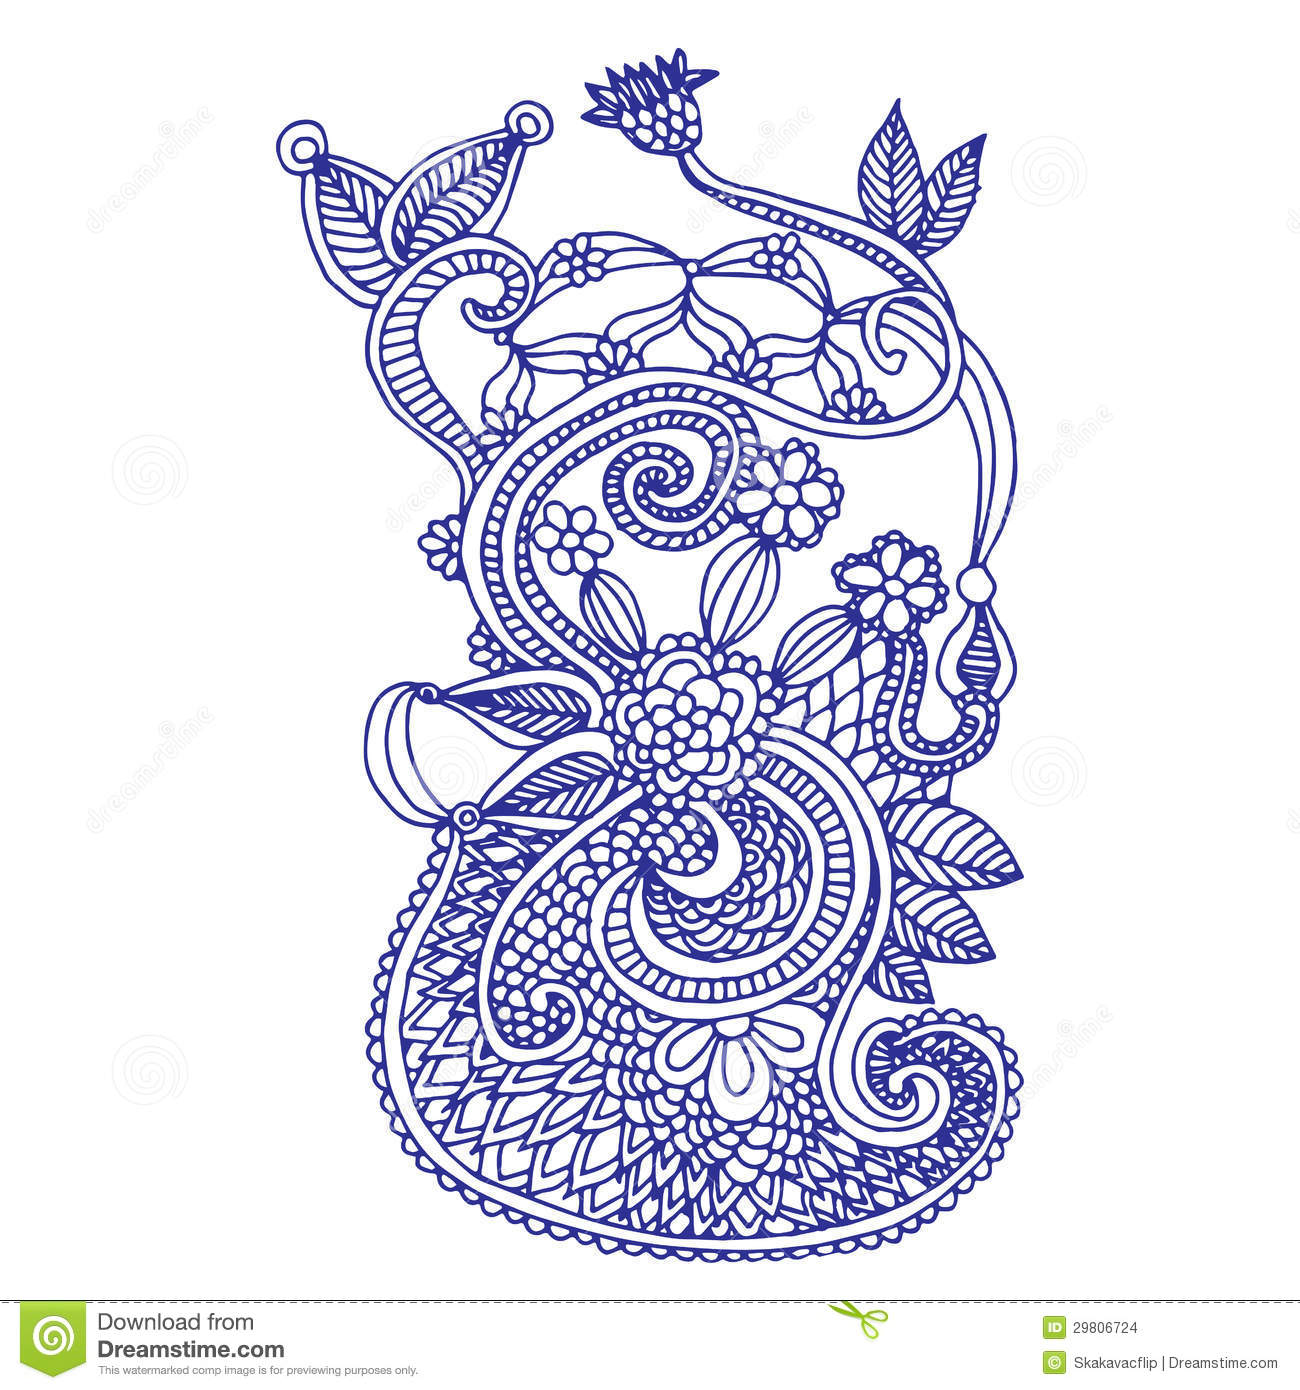 Line Drawing Embroidery : Neckline embroidery design stock illustration